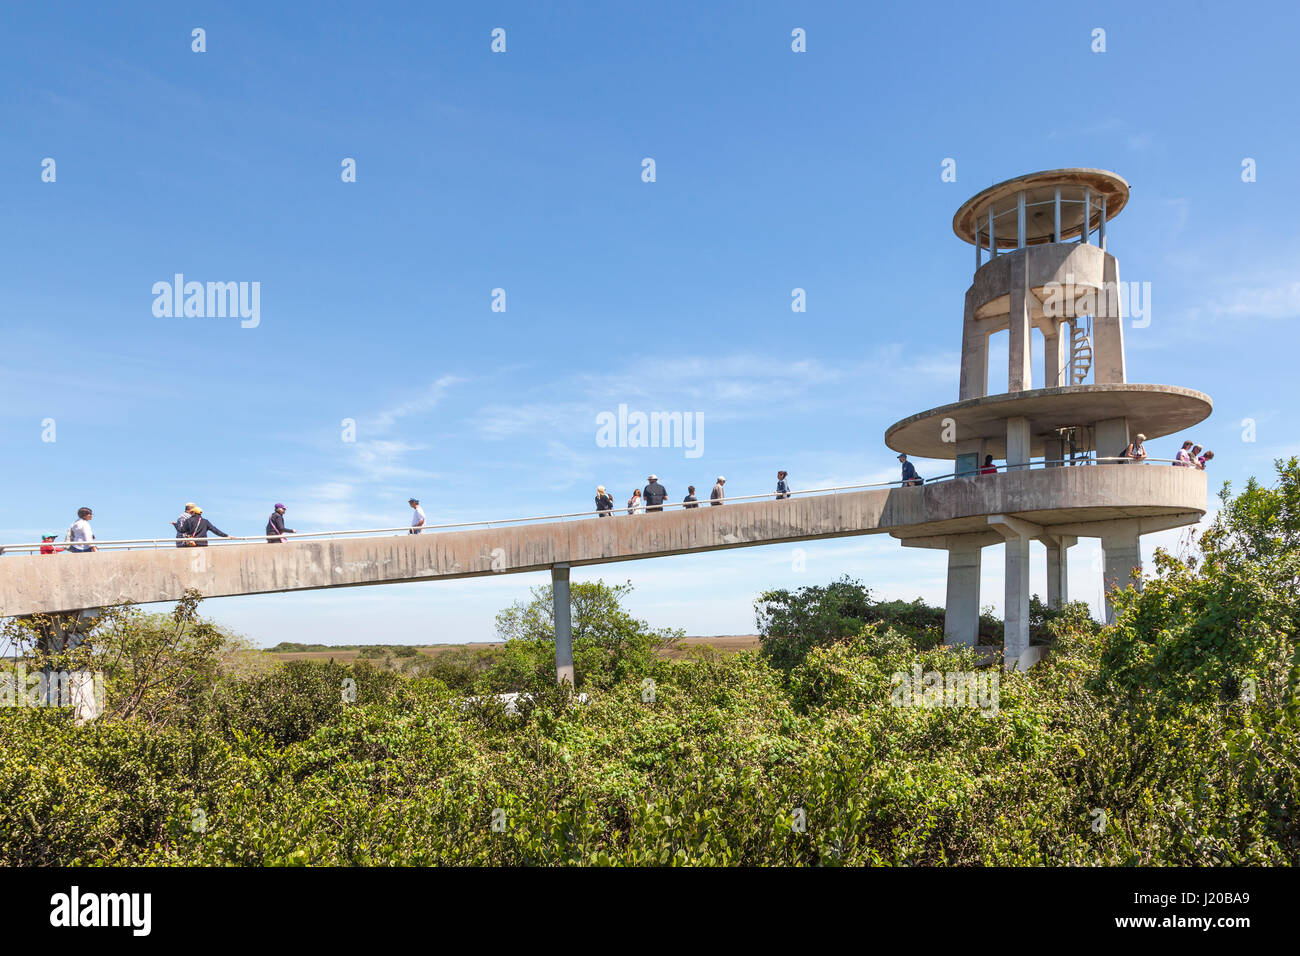 Miami, Fl - March 15, 2017: The Shark Valley Observation Tower in the Everglades National Park. Florida, United - Stock Image